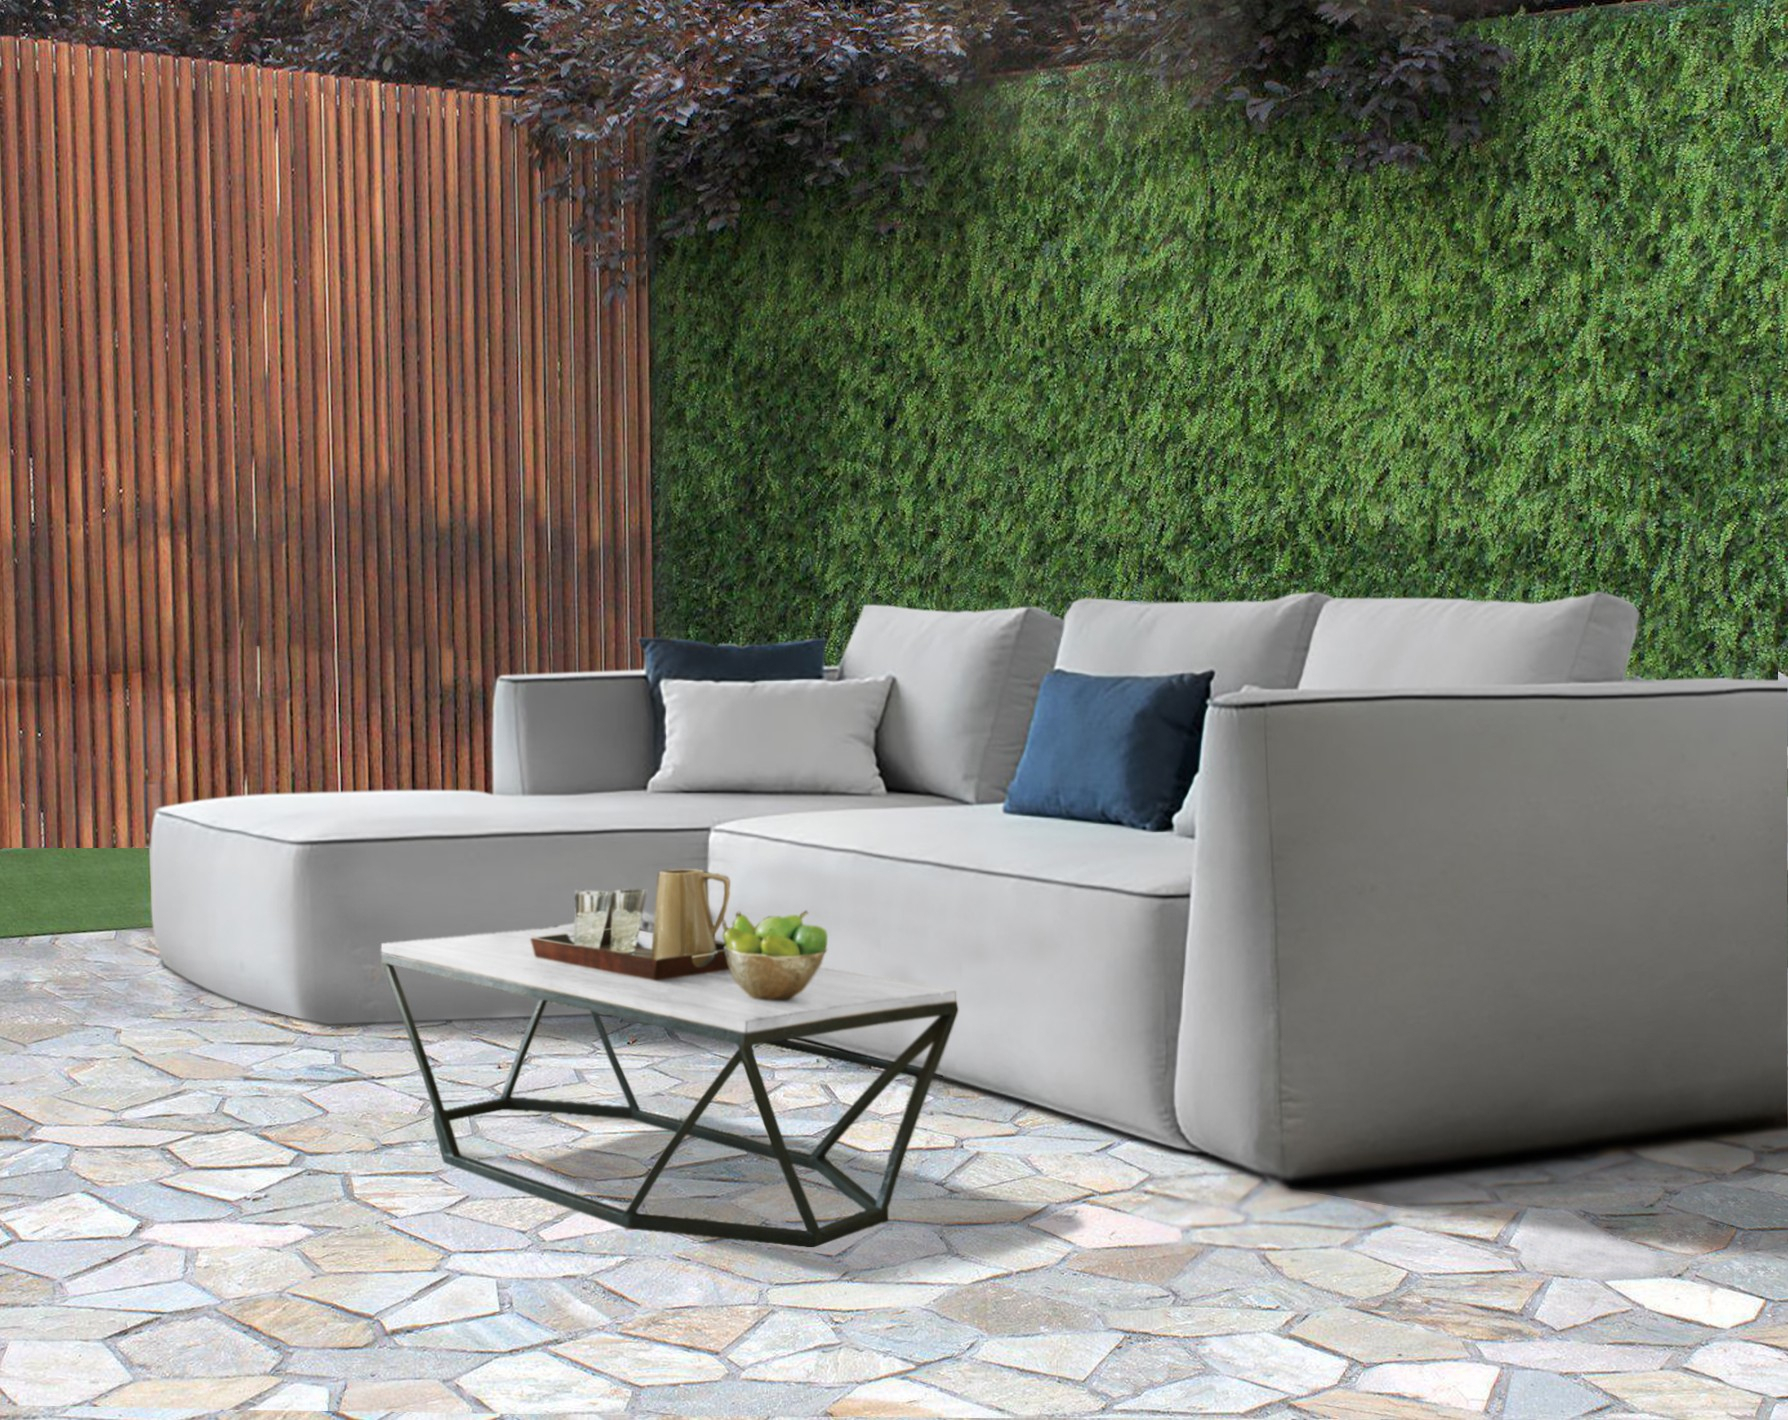 Aruba Bespoke Modular Outdoor Small Chaise Sofa   Hadley Rose In Outdoor Sofa Chairs (View 12 of 15)